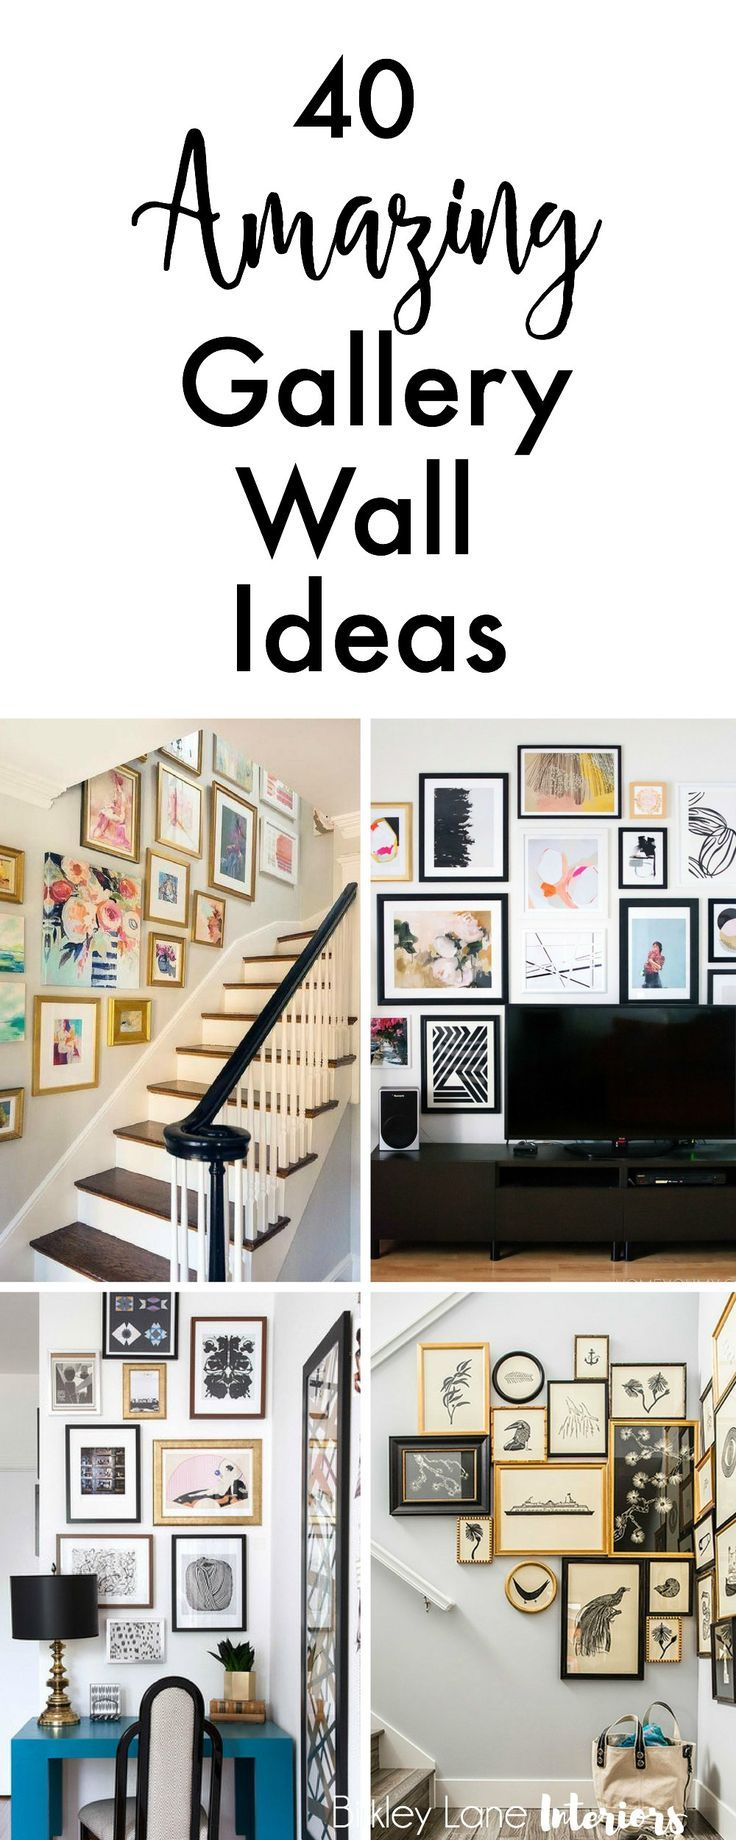 Design Gallery Live 235 Best Eclectic Home Decorating Inspiration Images On Pinterest